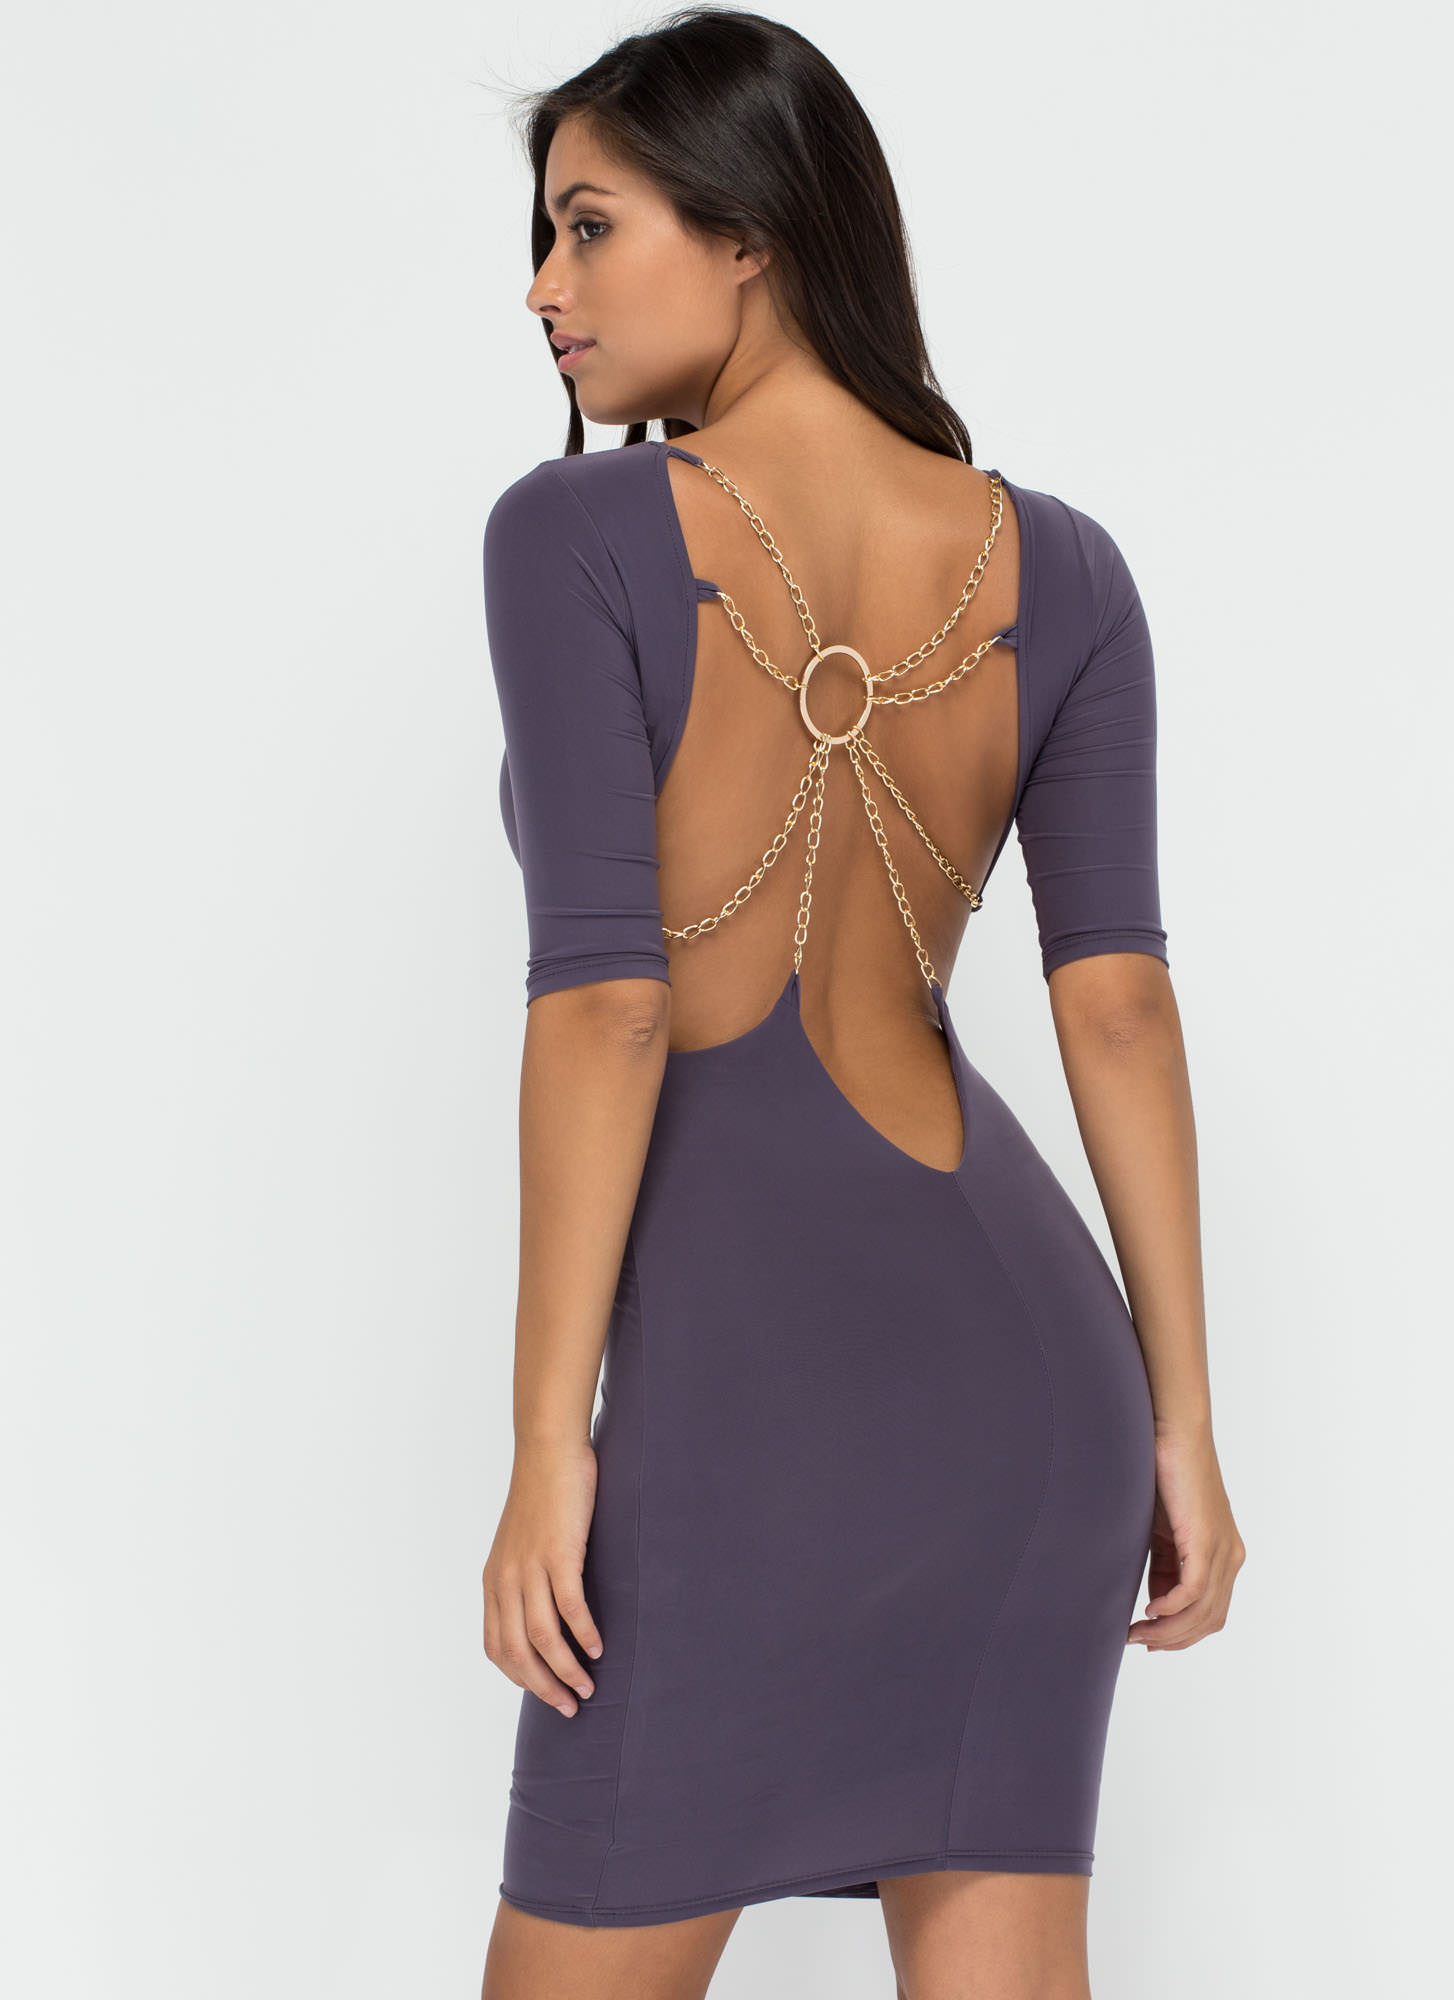 Web Design Chained Open Back Dress GREY